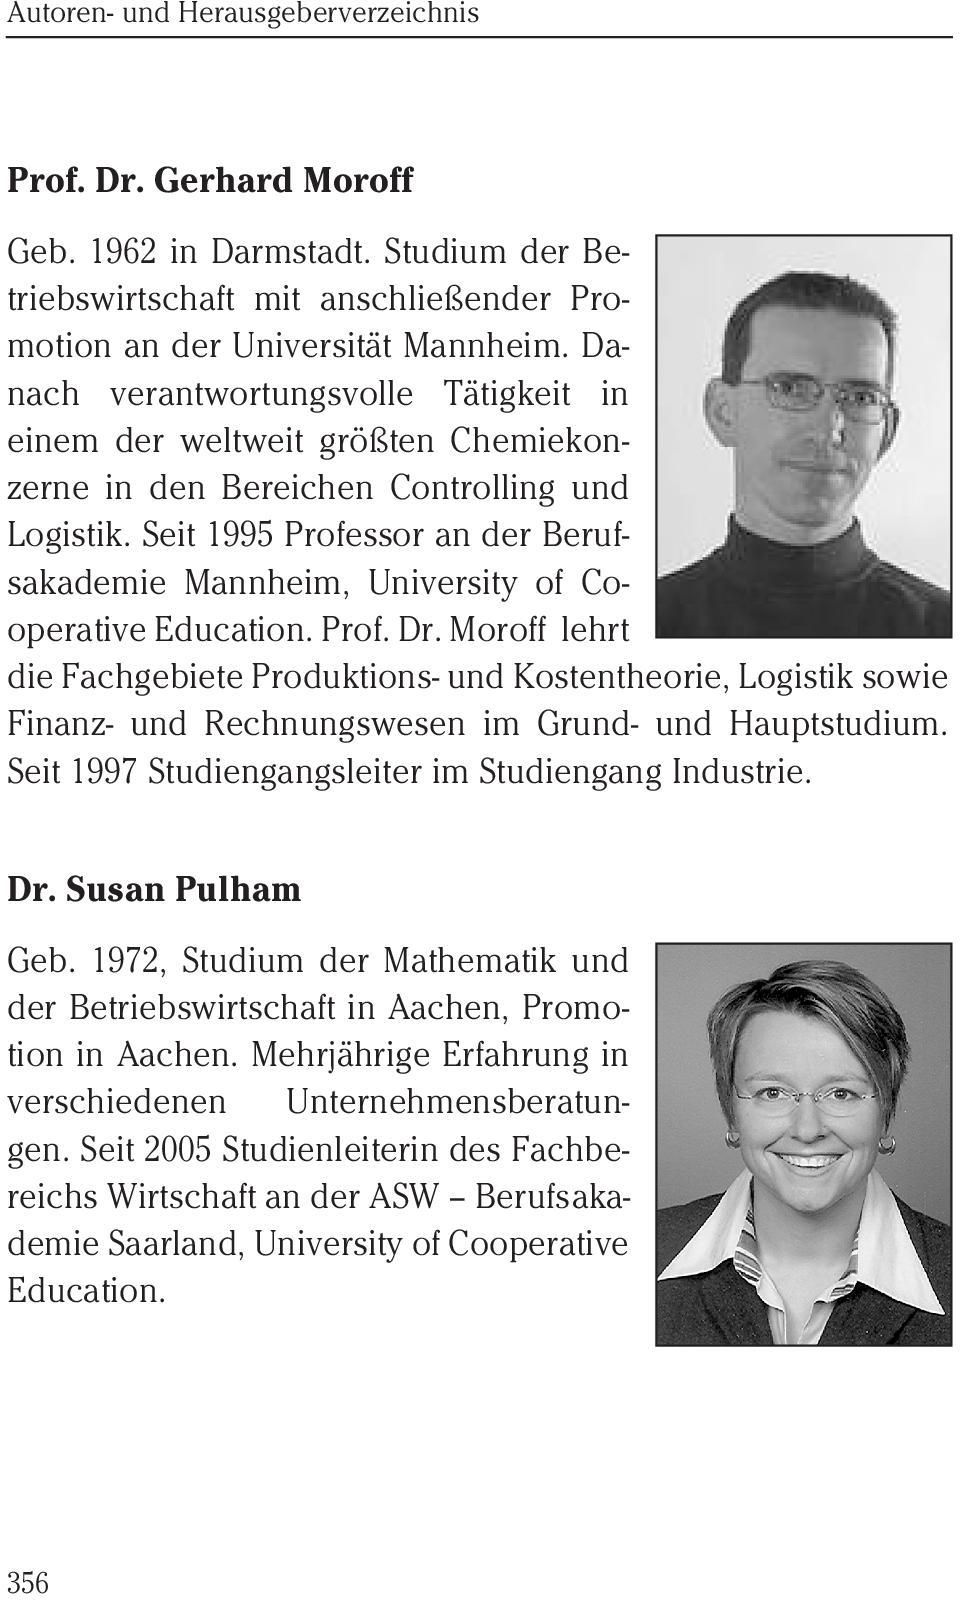 Seit 1995 Professor an der Berufsakademie Mannheim, University of Cooperative Education. Prof. Dr.